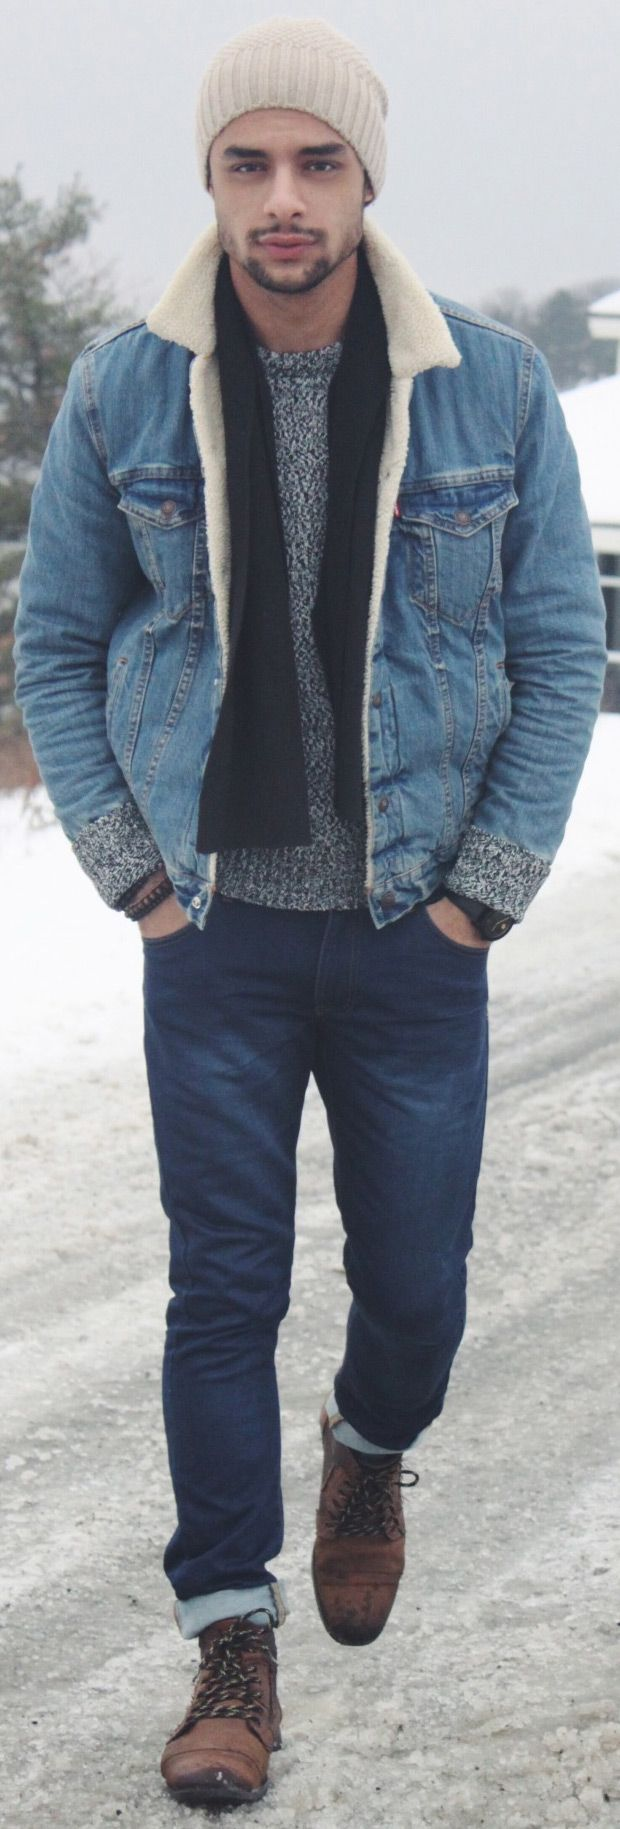 Winter brilliance: Show up for a date looking like this and she wont be able to resist you #mensfashion